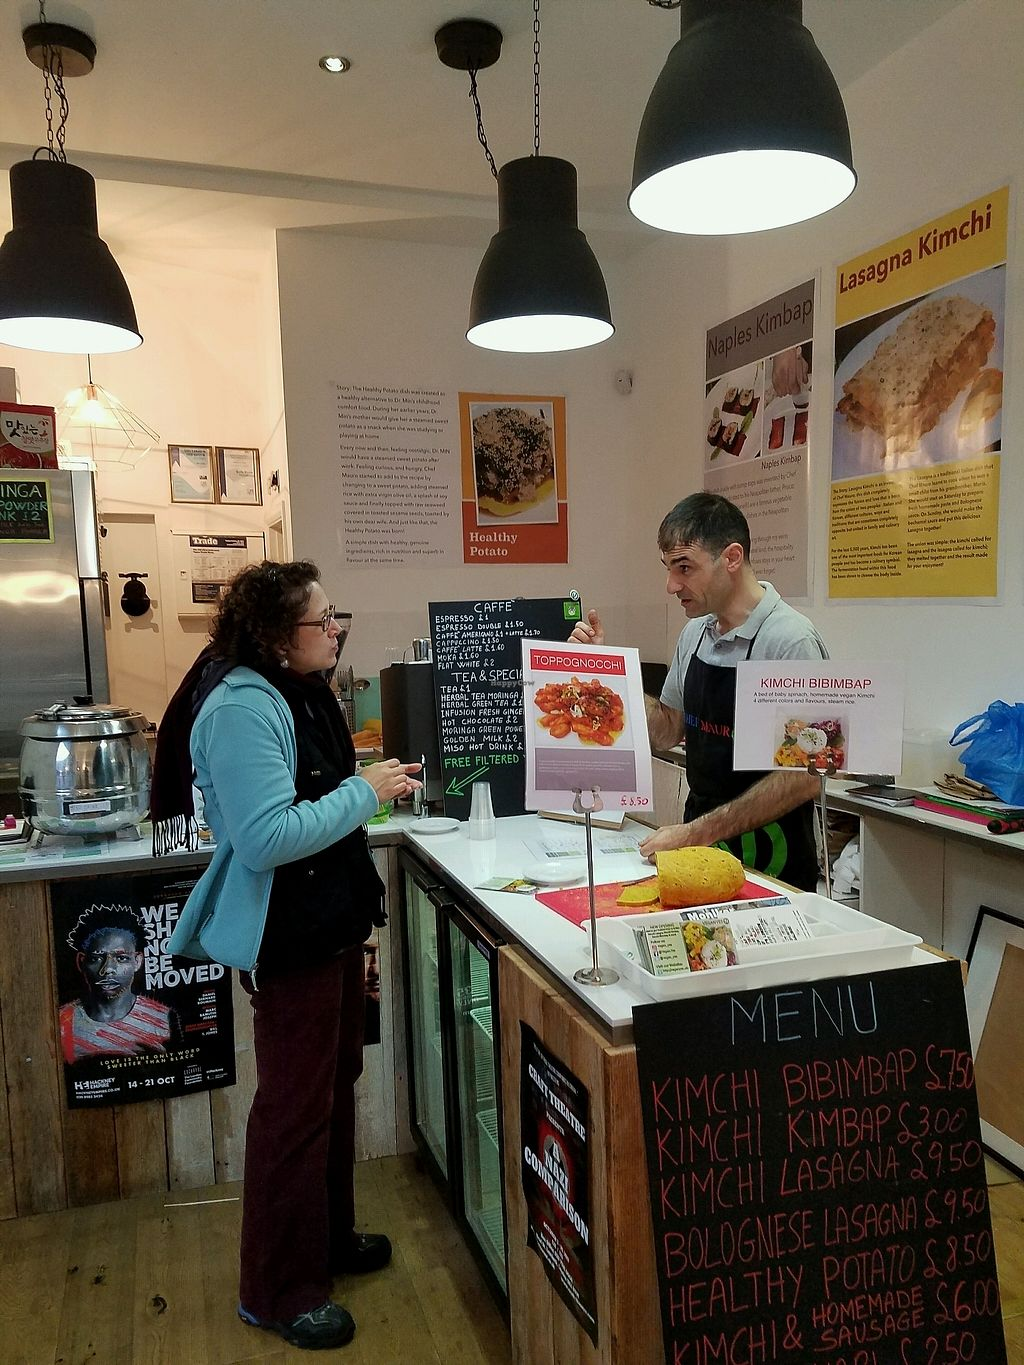 """Photo of Vegan Yes - Whitechapel  by <a href=""""/members/profile/jbuberel"""">jbuberel</a> <br/>Mauro , owner offering a sample of his homemade Nutella <br/> October 1, 2017  - <a href='/contact/abuse/image/98828/310705'>Report</a>"""